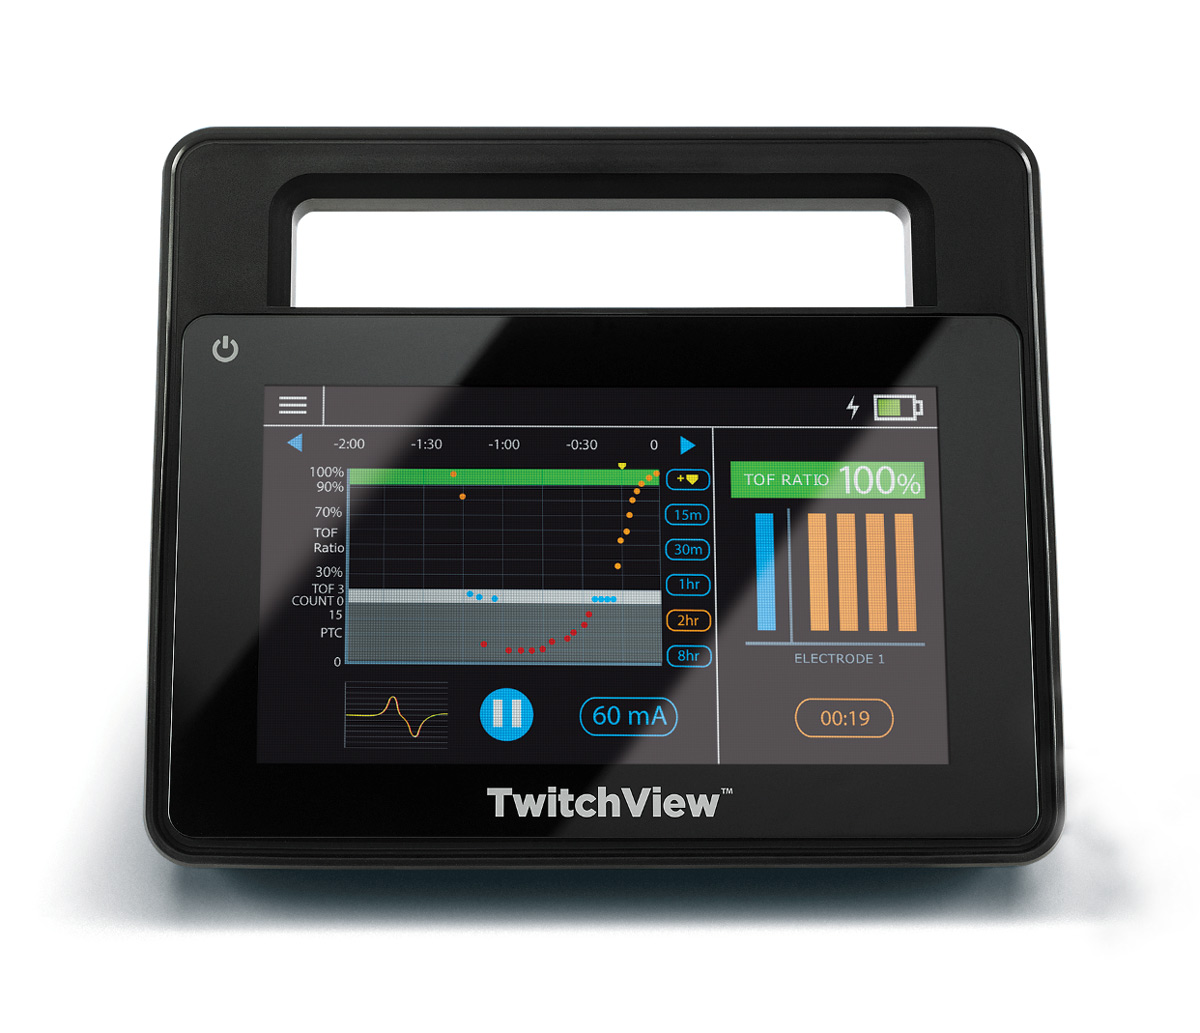 TwitchView TOF monitor display screen